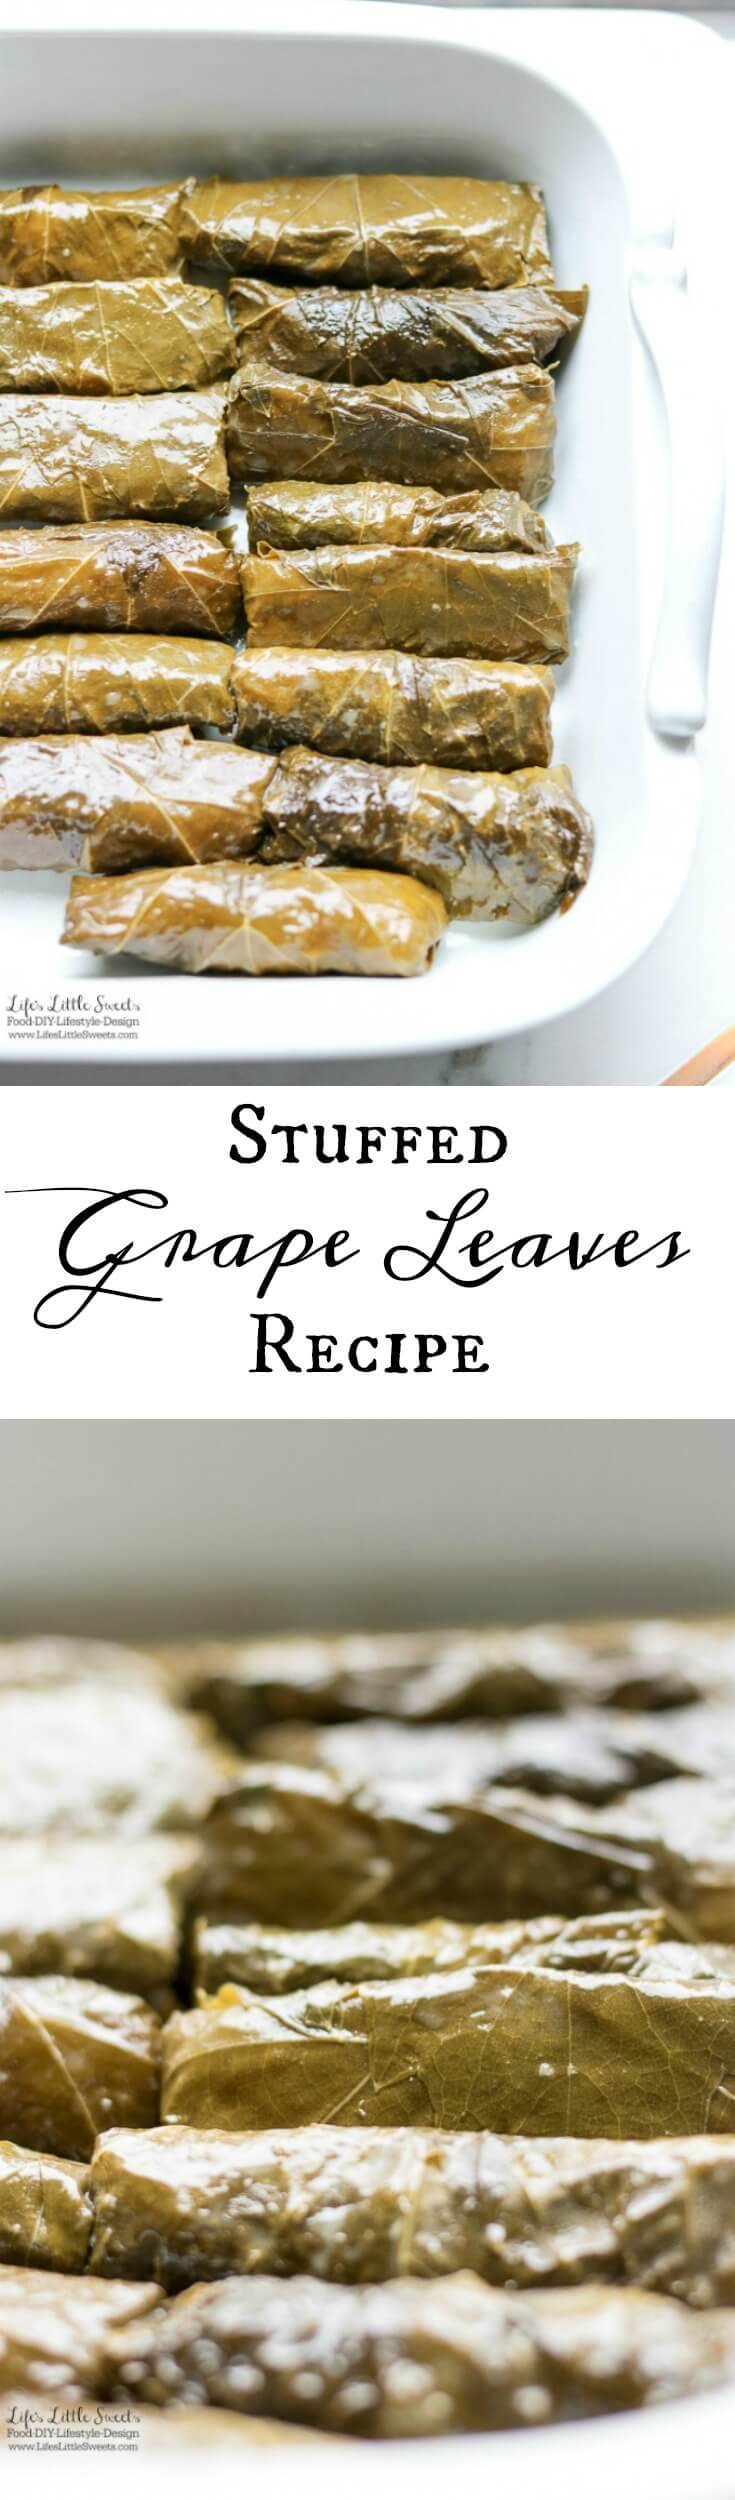 This Stuffed Grape Leaves Recipe is perfect for Spring and Summer; enjoy them at picnics, a party or a family gathering. They are stuffed with cooked rice, dill, mint with fresh squeezed lemon juice and then wrapped in delicious grape leaves. (serve hot or cold, meat and vegan option)